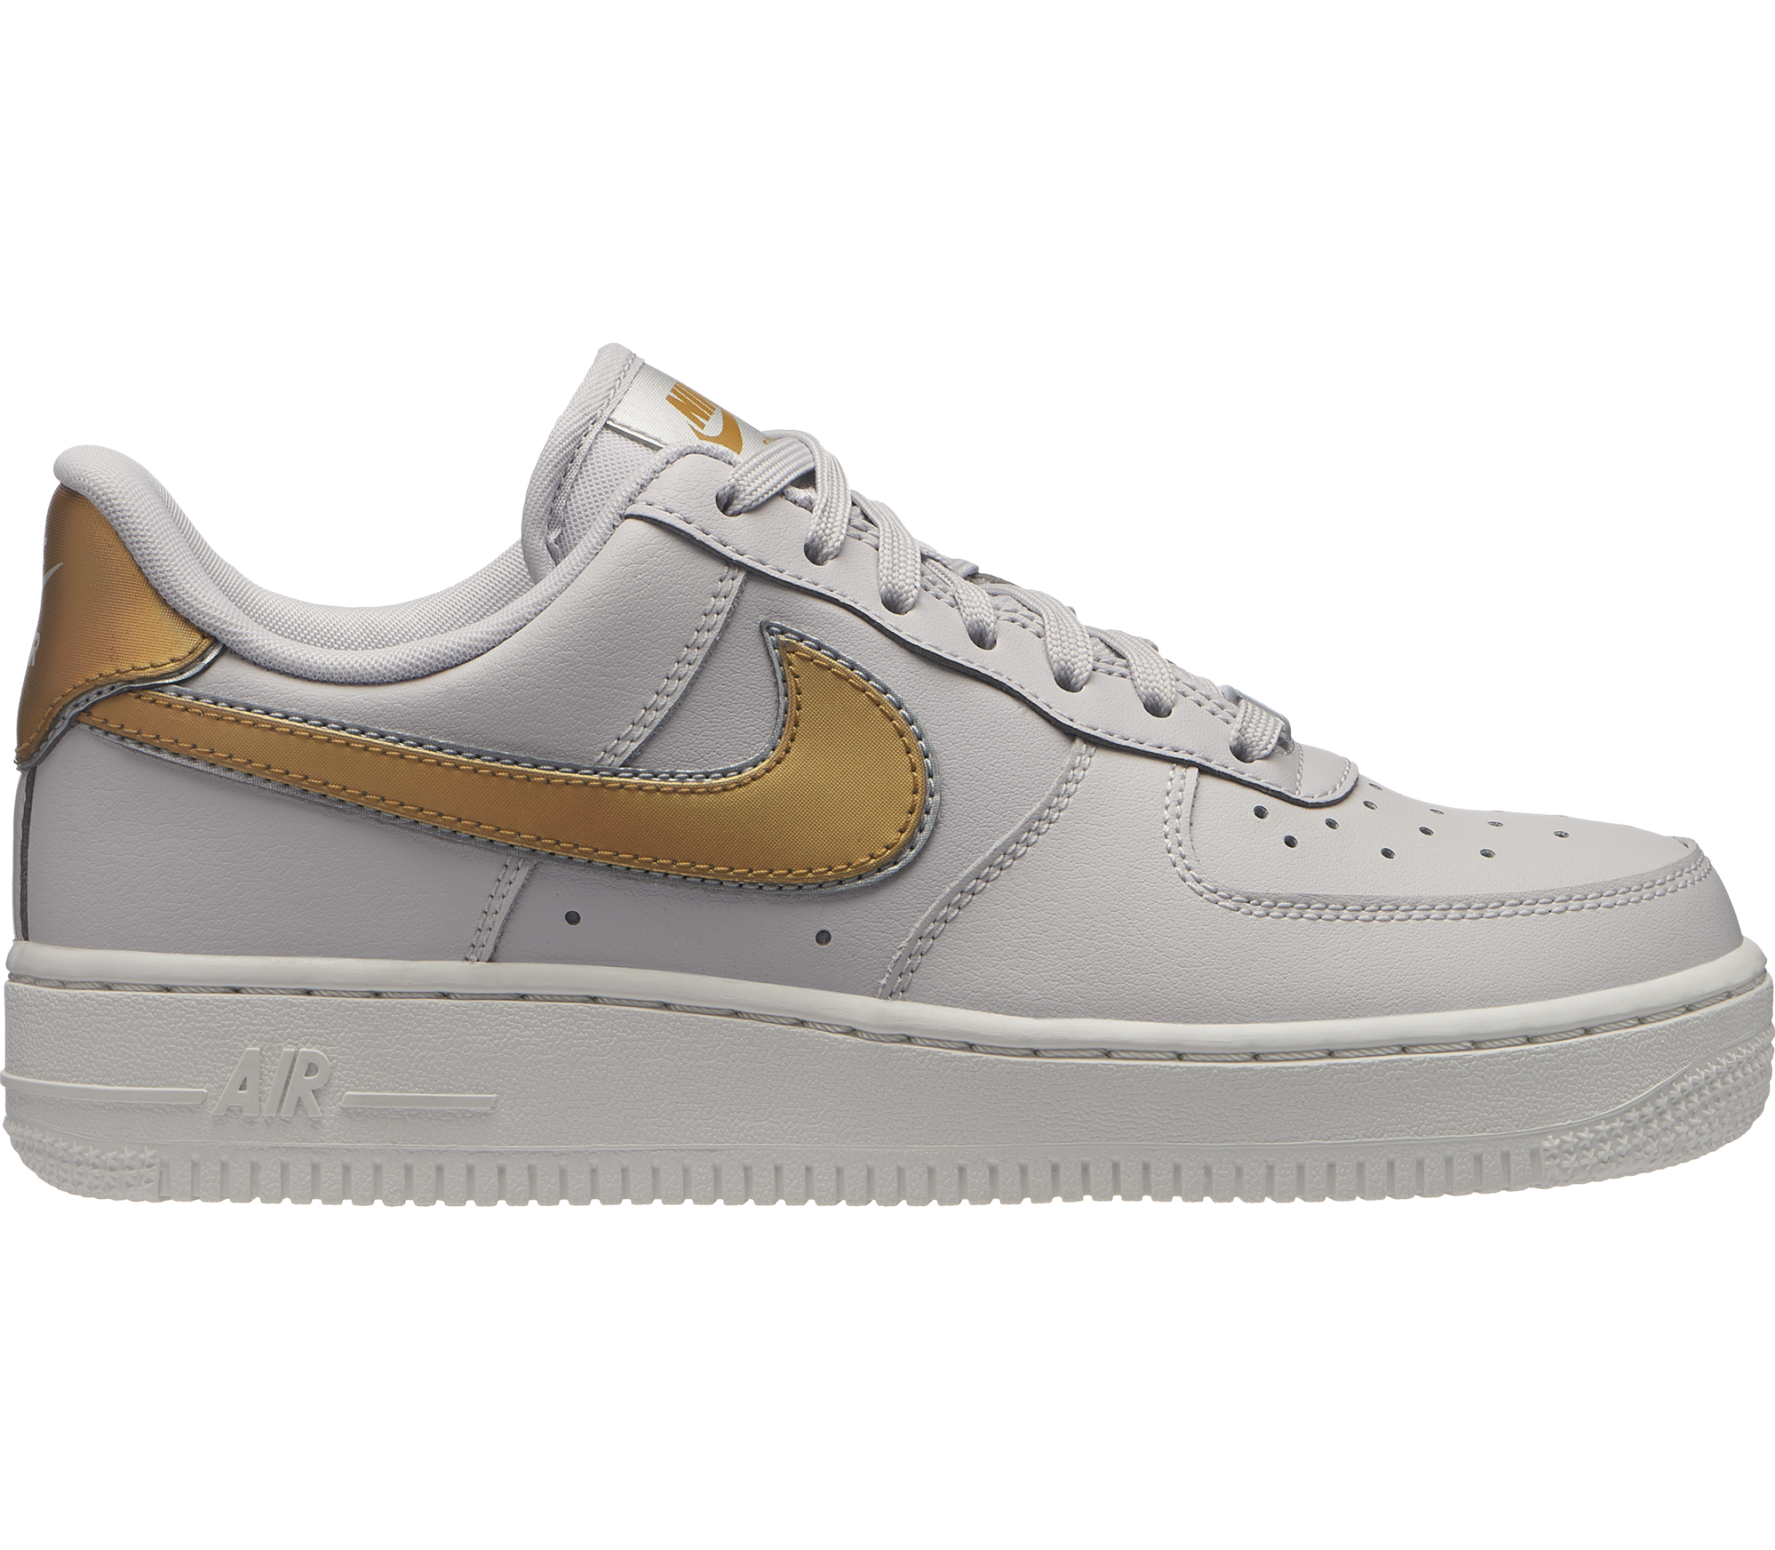 Nike Sportswear - Air Force 1 '07 Metallic Damen Sneaker (weiß)